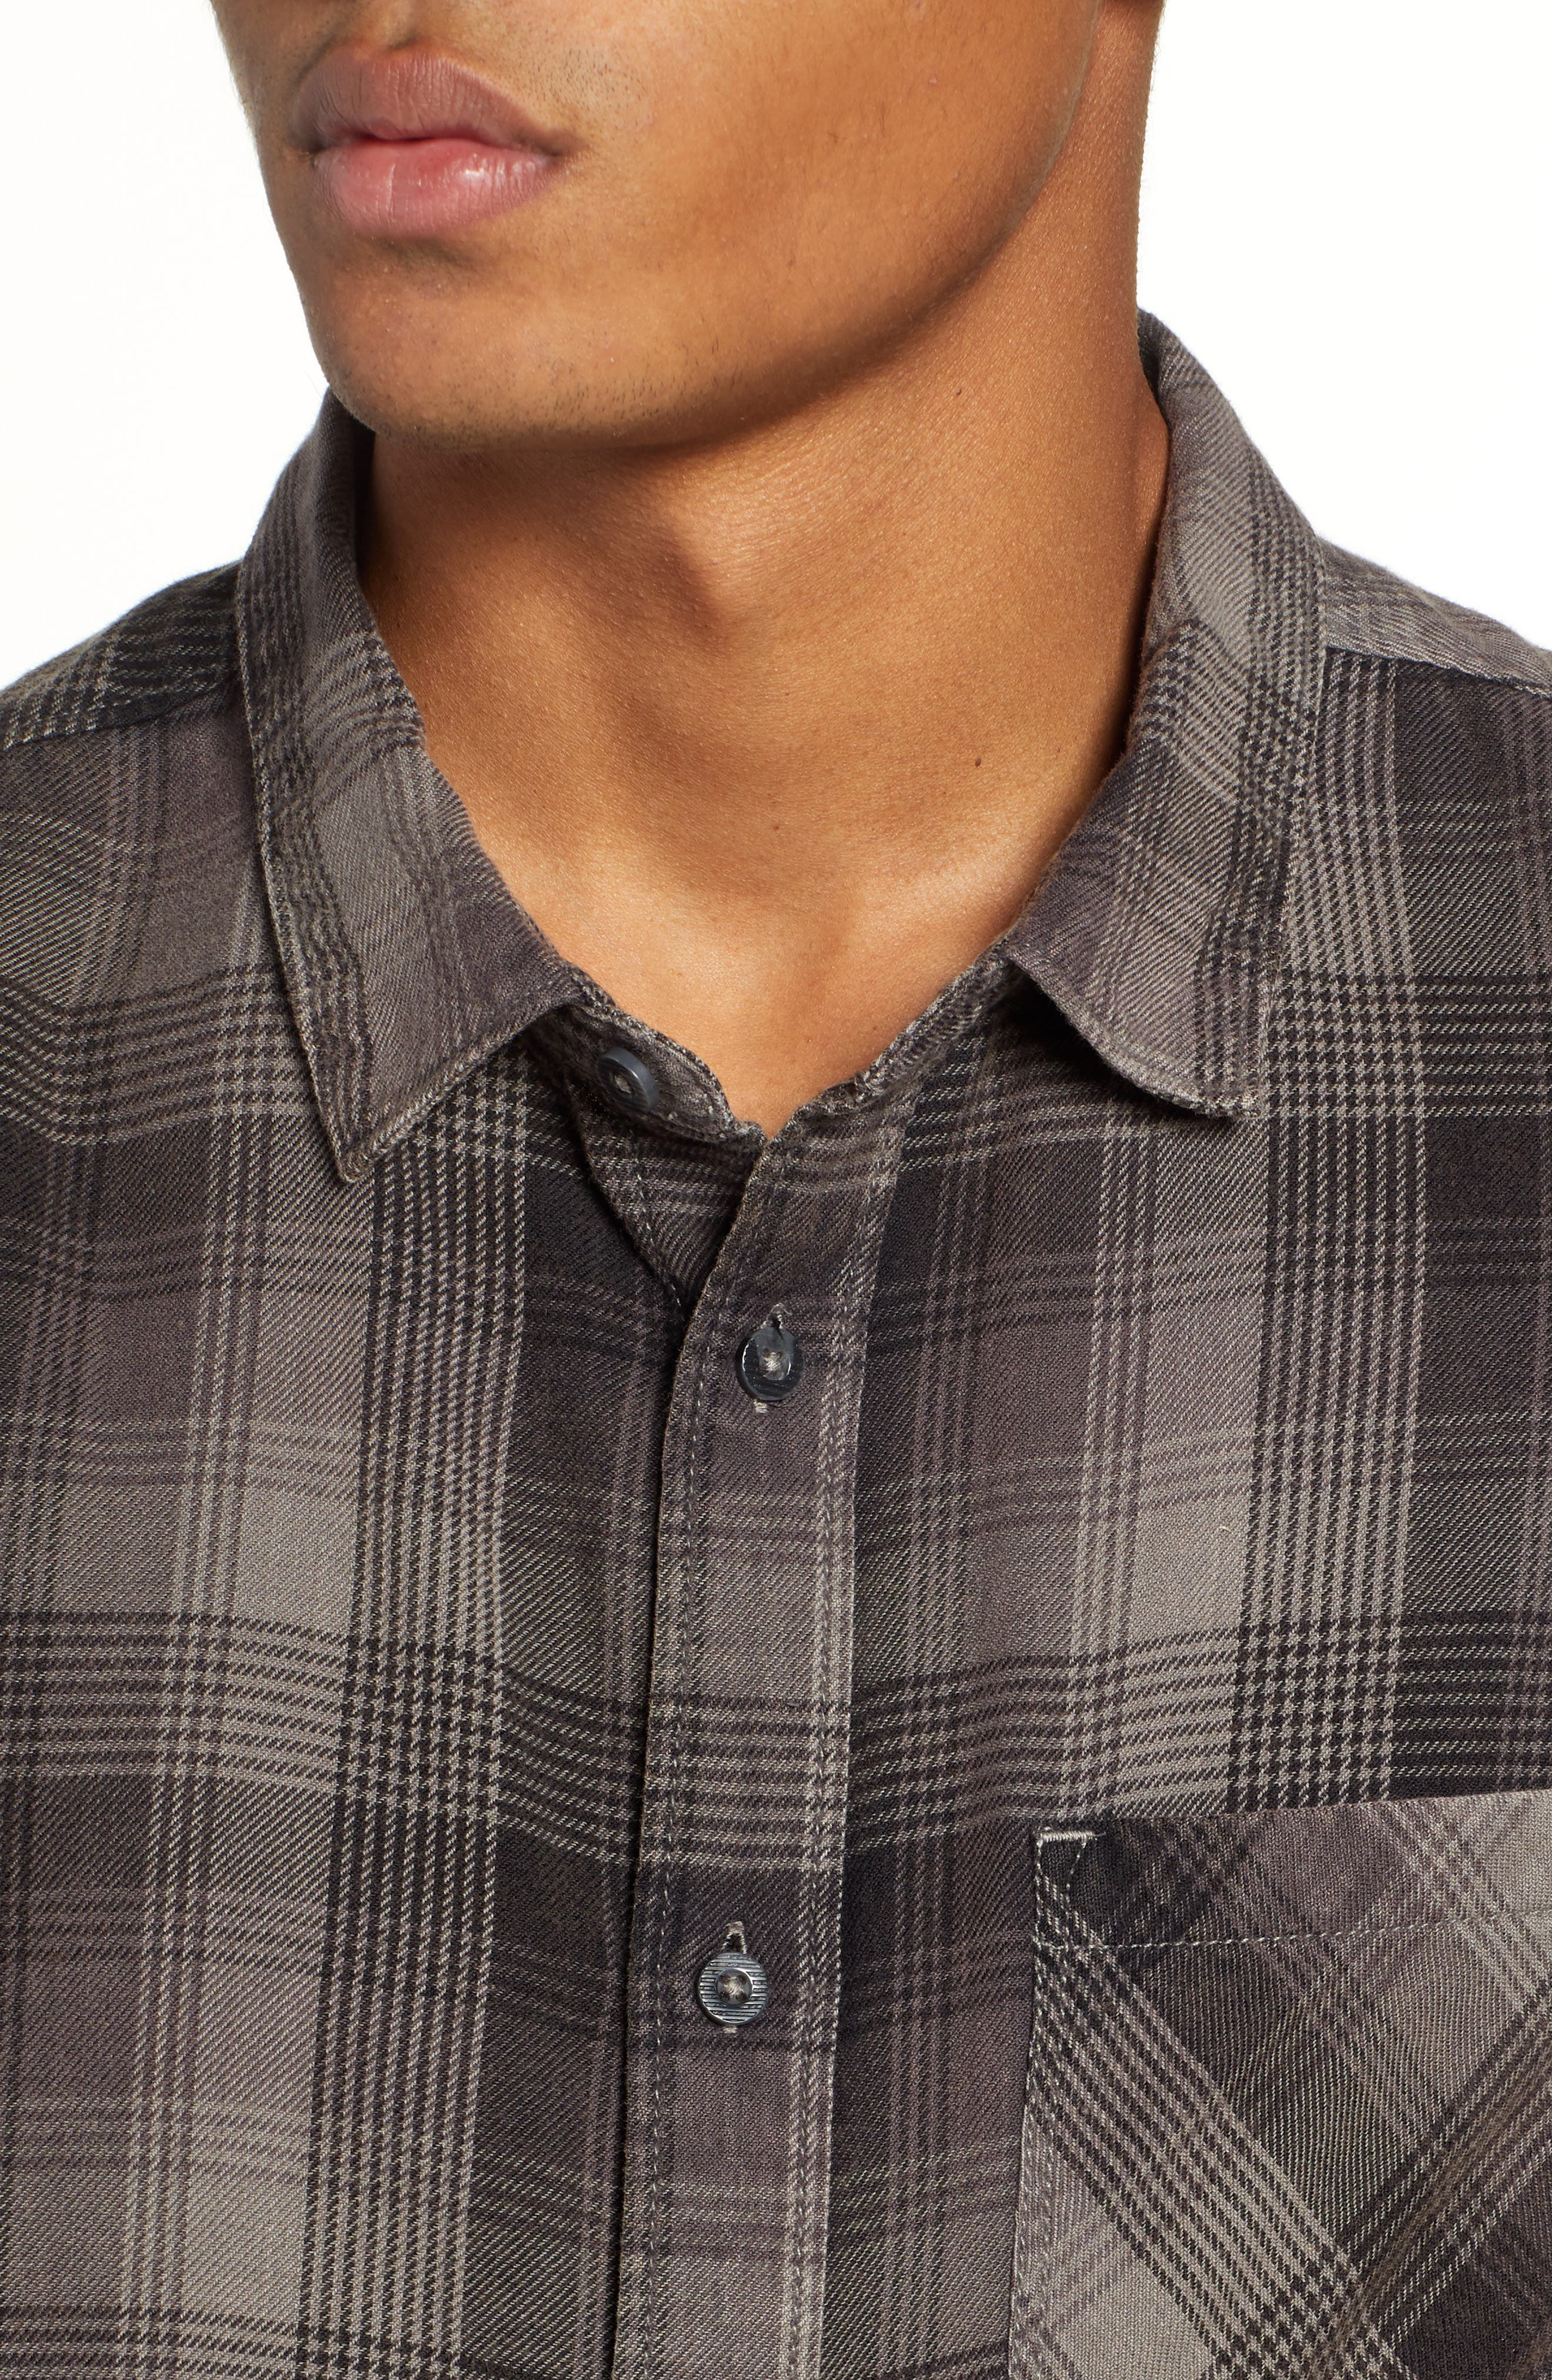 Freemont Flannel Shirt,                             Alternate thumbnail 2, color,                             CHARCOAL